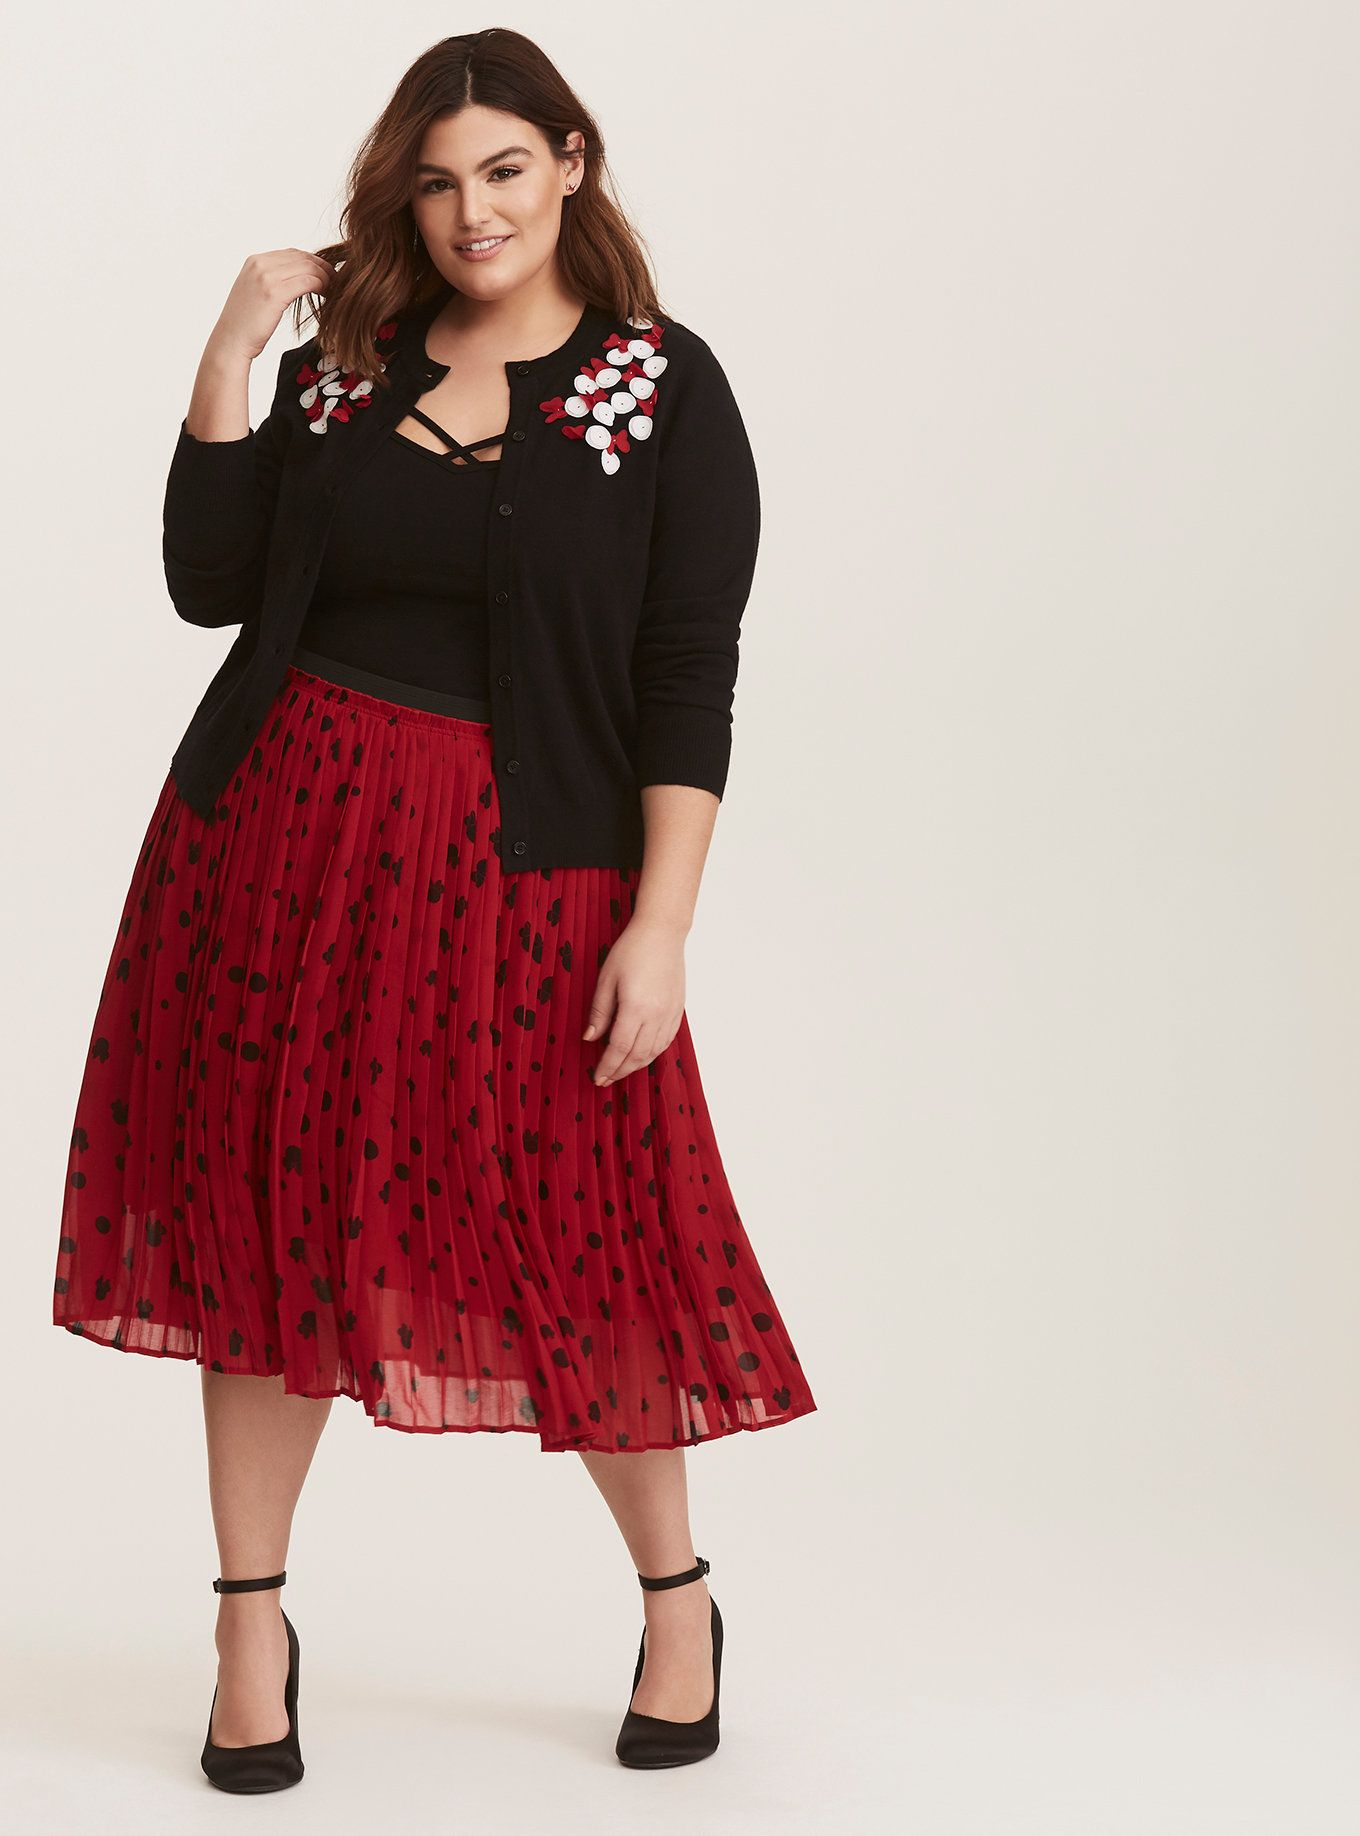 26d840c450 From our Disney Minnie Mouse collection, this chic red pleated chiffon skirt  comes in an allover Minnie Mouse pattern and an elastic waistband for the  ...